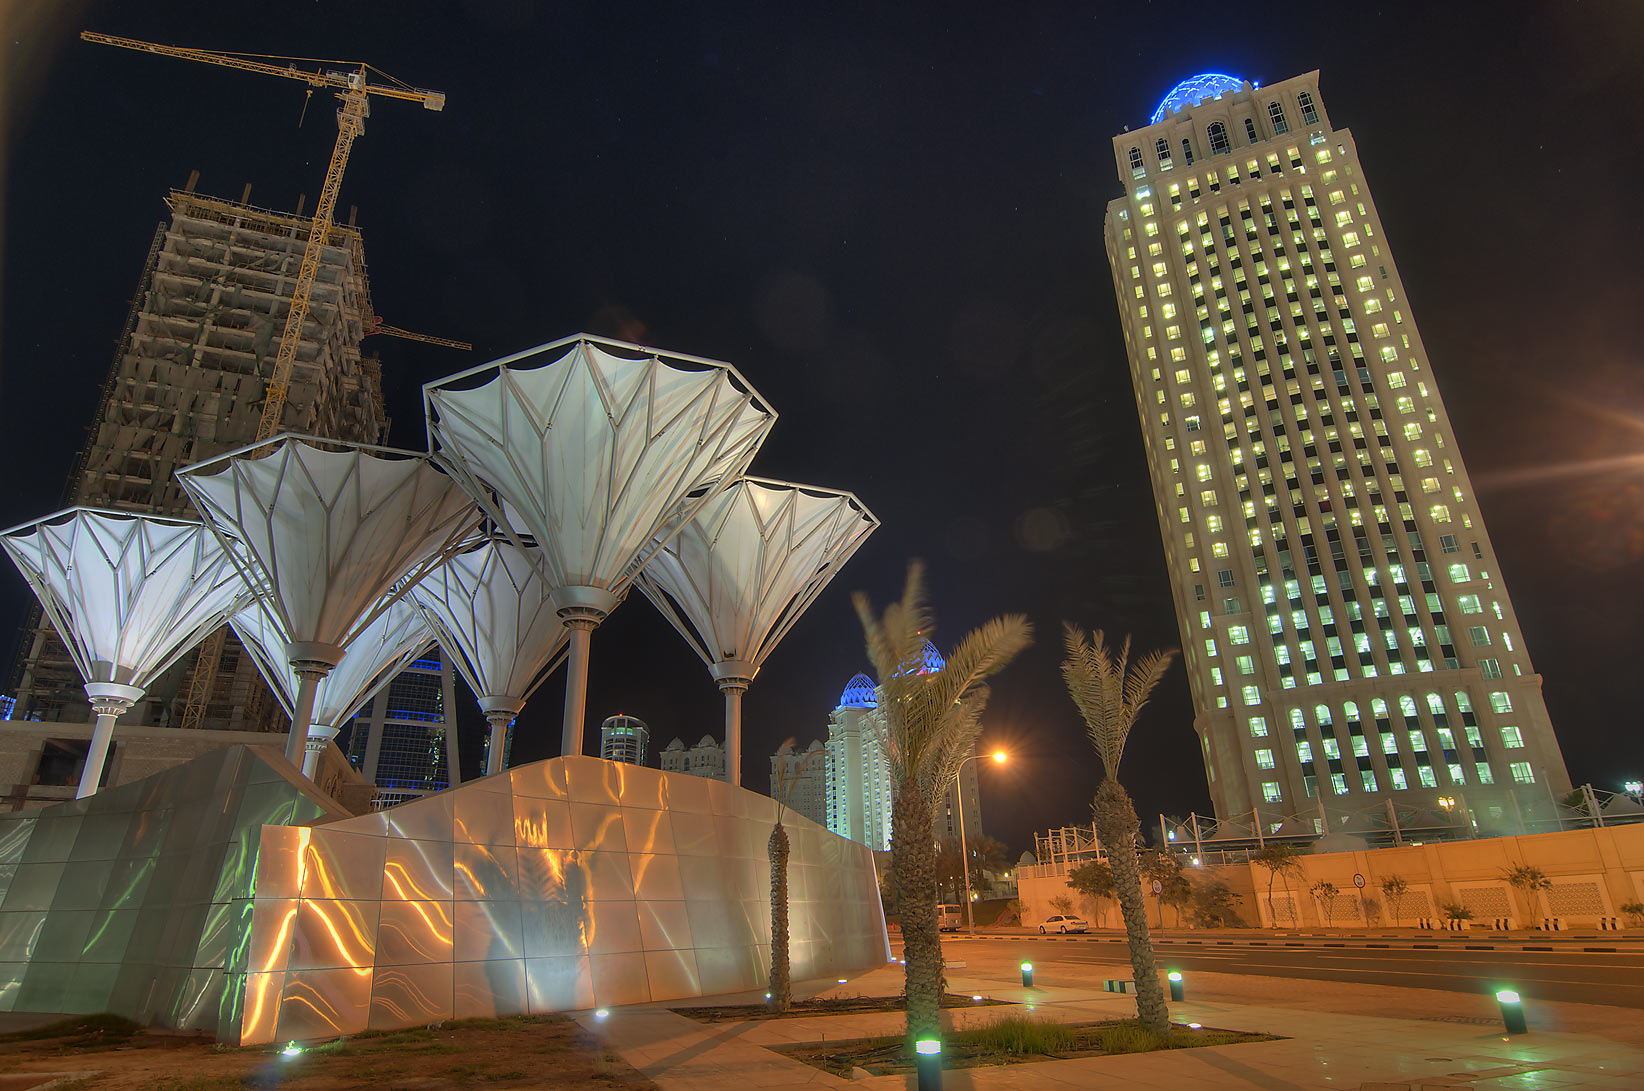 Exhibition Roundabout and Qtel Tower in West Bay. Doha, Qatar